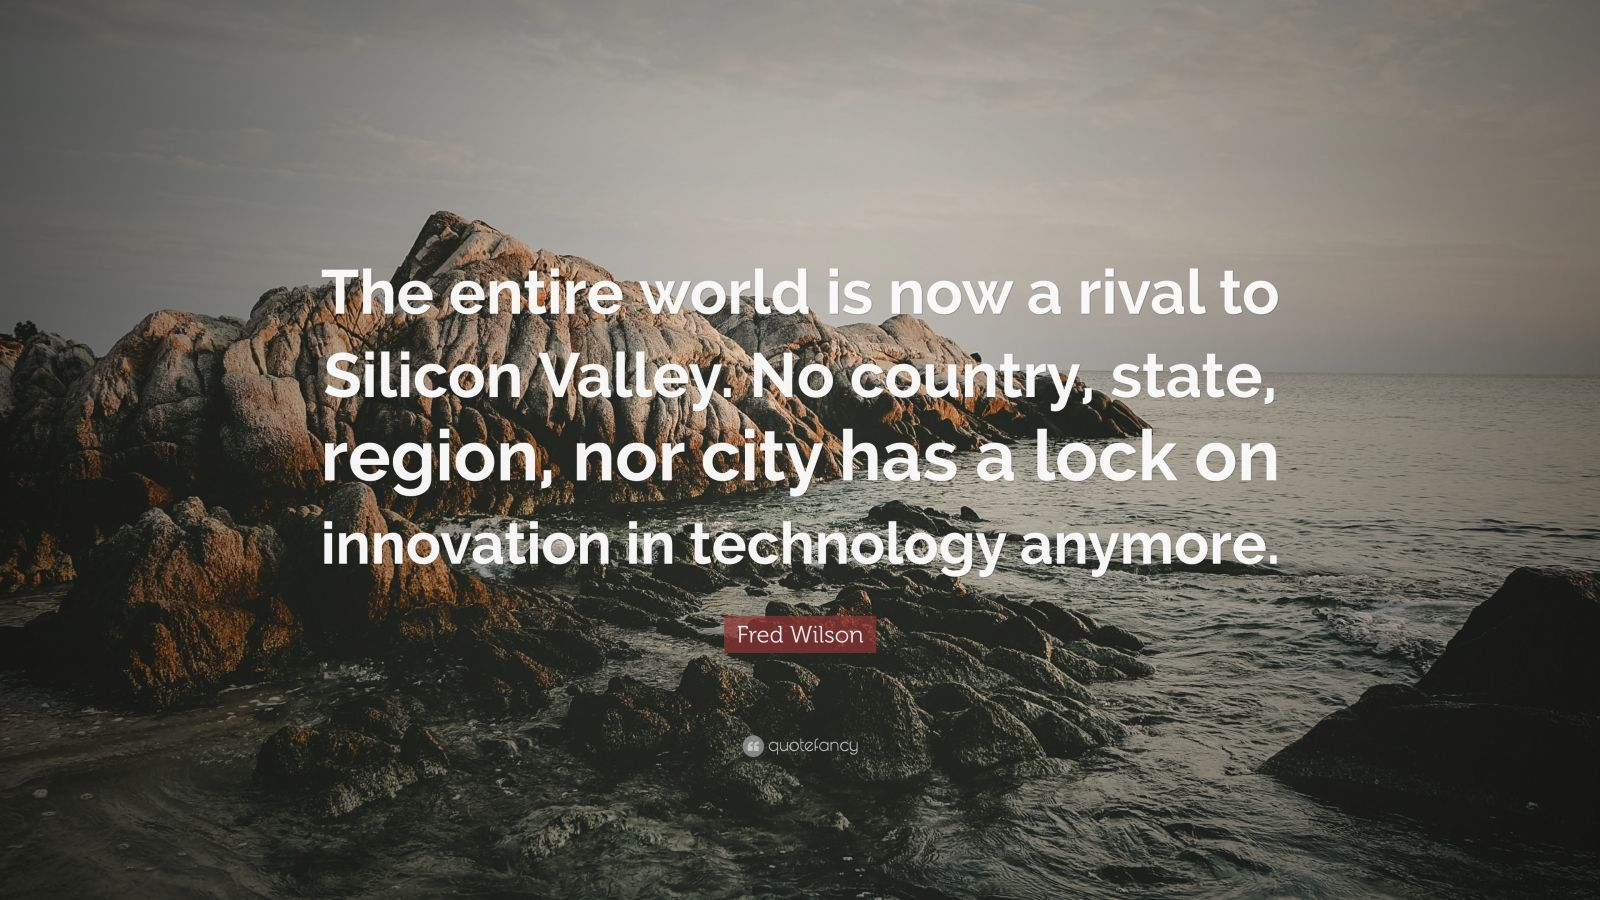 """Fred Wilson Quote: """"The entire world is now a rival to Silicon Valley. No country, state, region, nor city has a lock on innovation in technology anymore."""""""